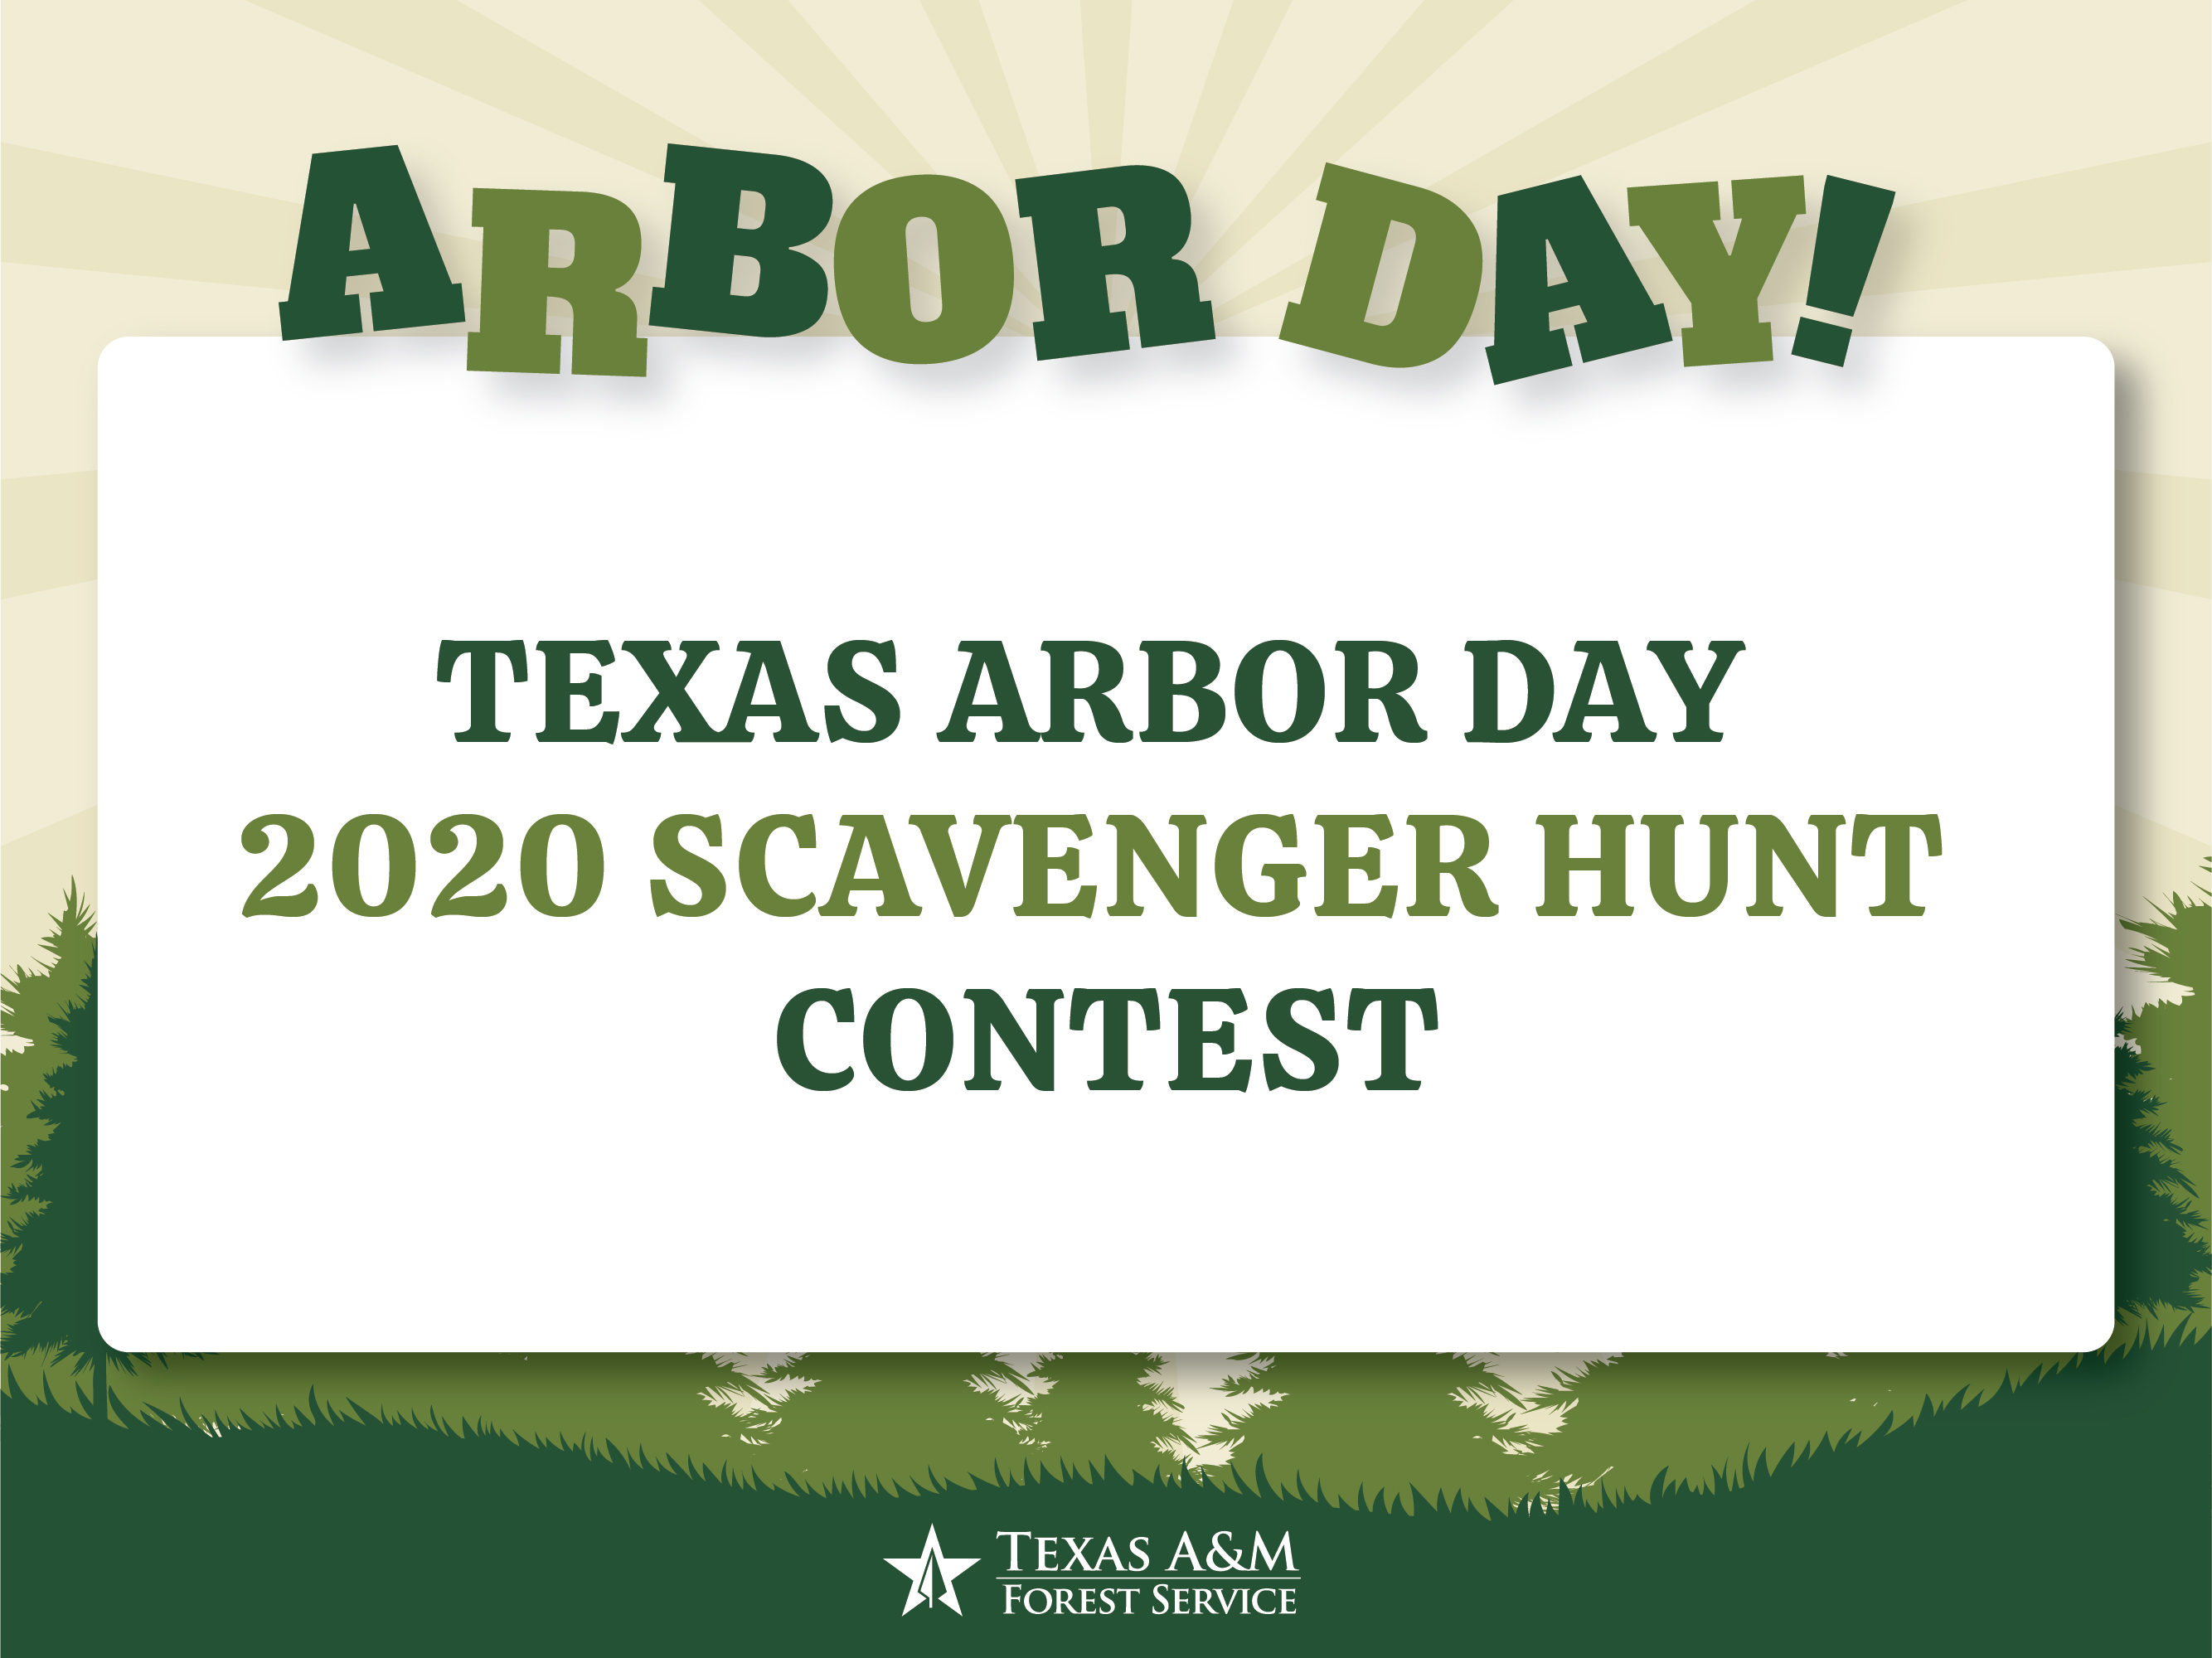 Arbor Day Scavenger Hunt Activity Contest